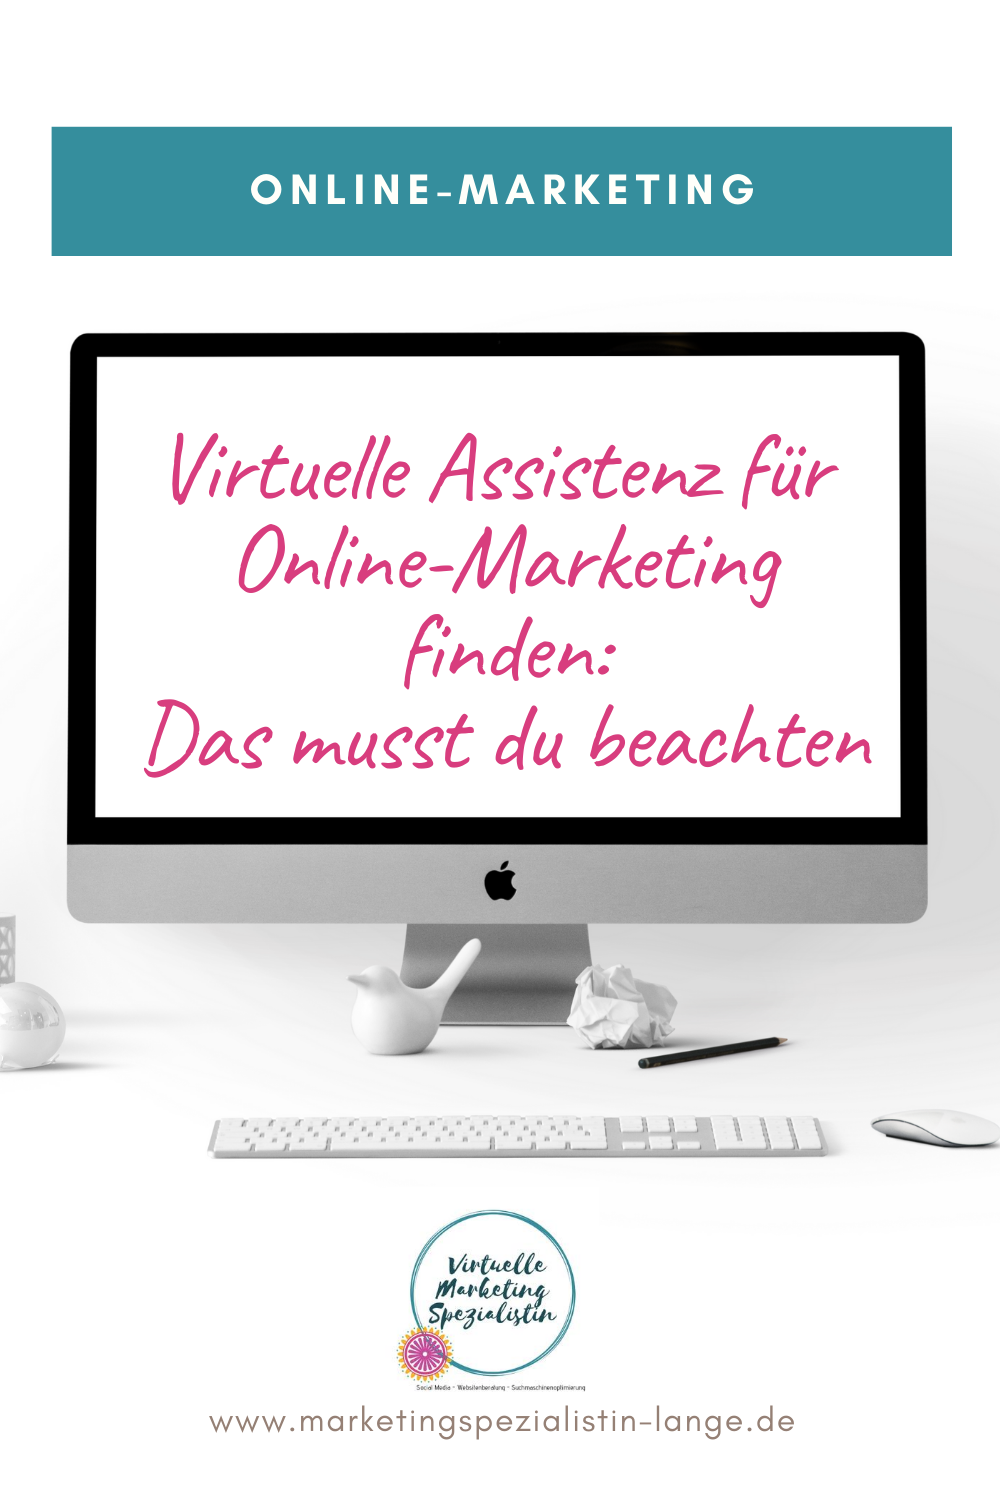 Virtuelle Assistenz für Online-Marketing finden